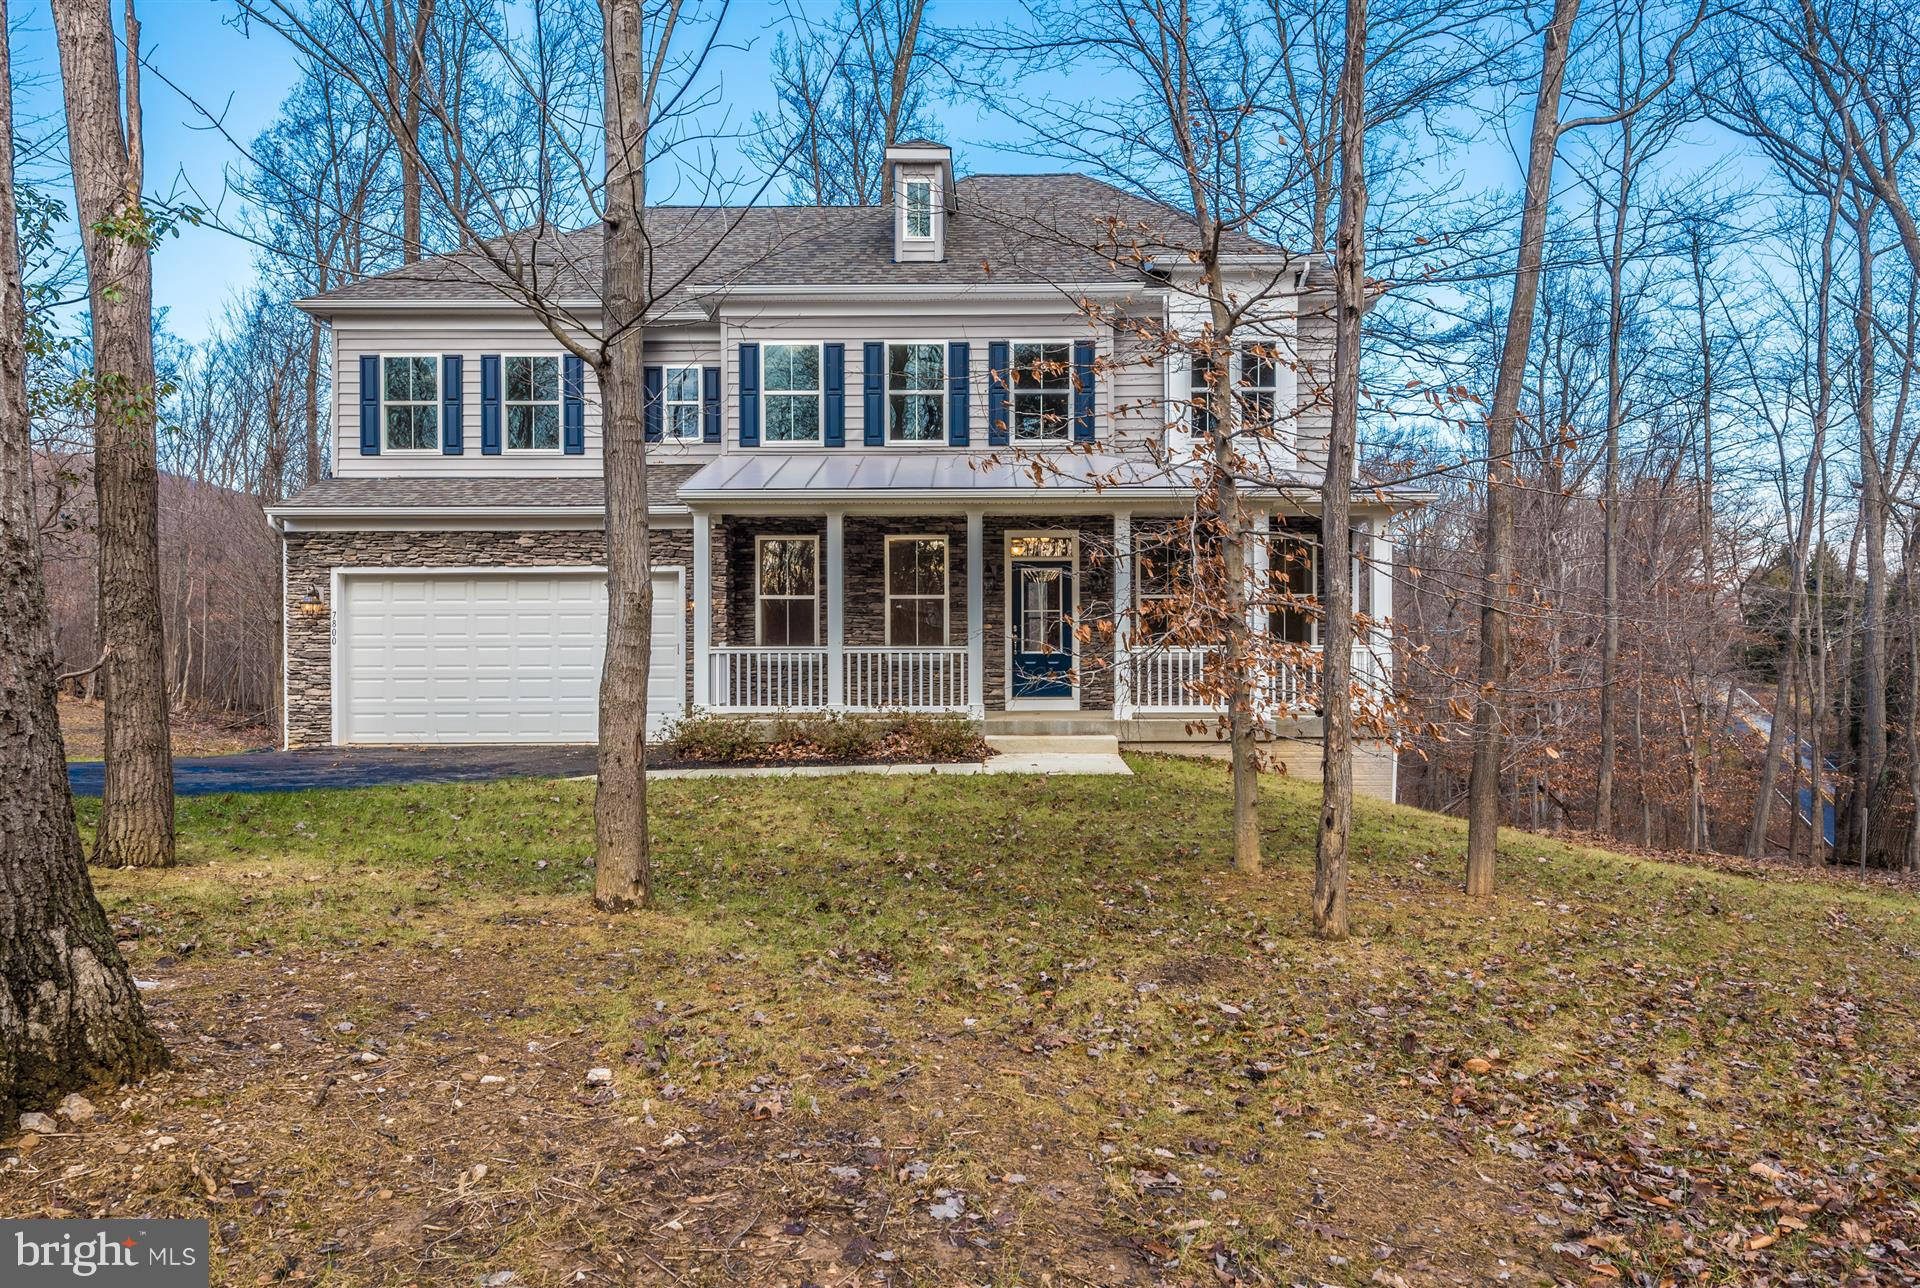 7800 OLD RECEIVER ROAD, FREDERICK, MD 21702